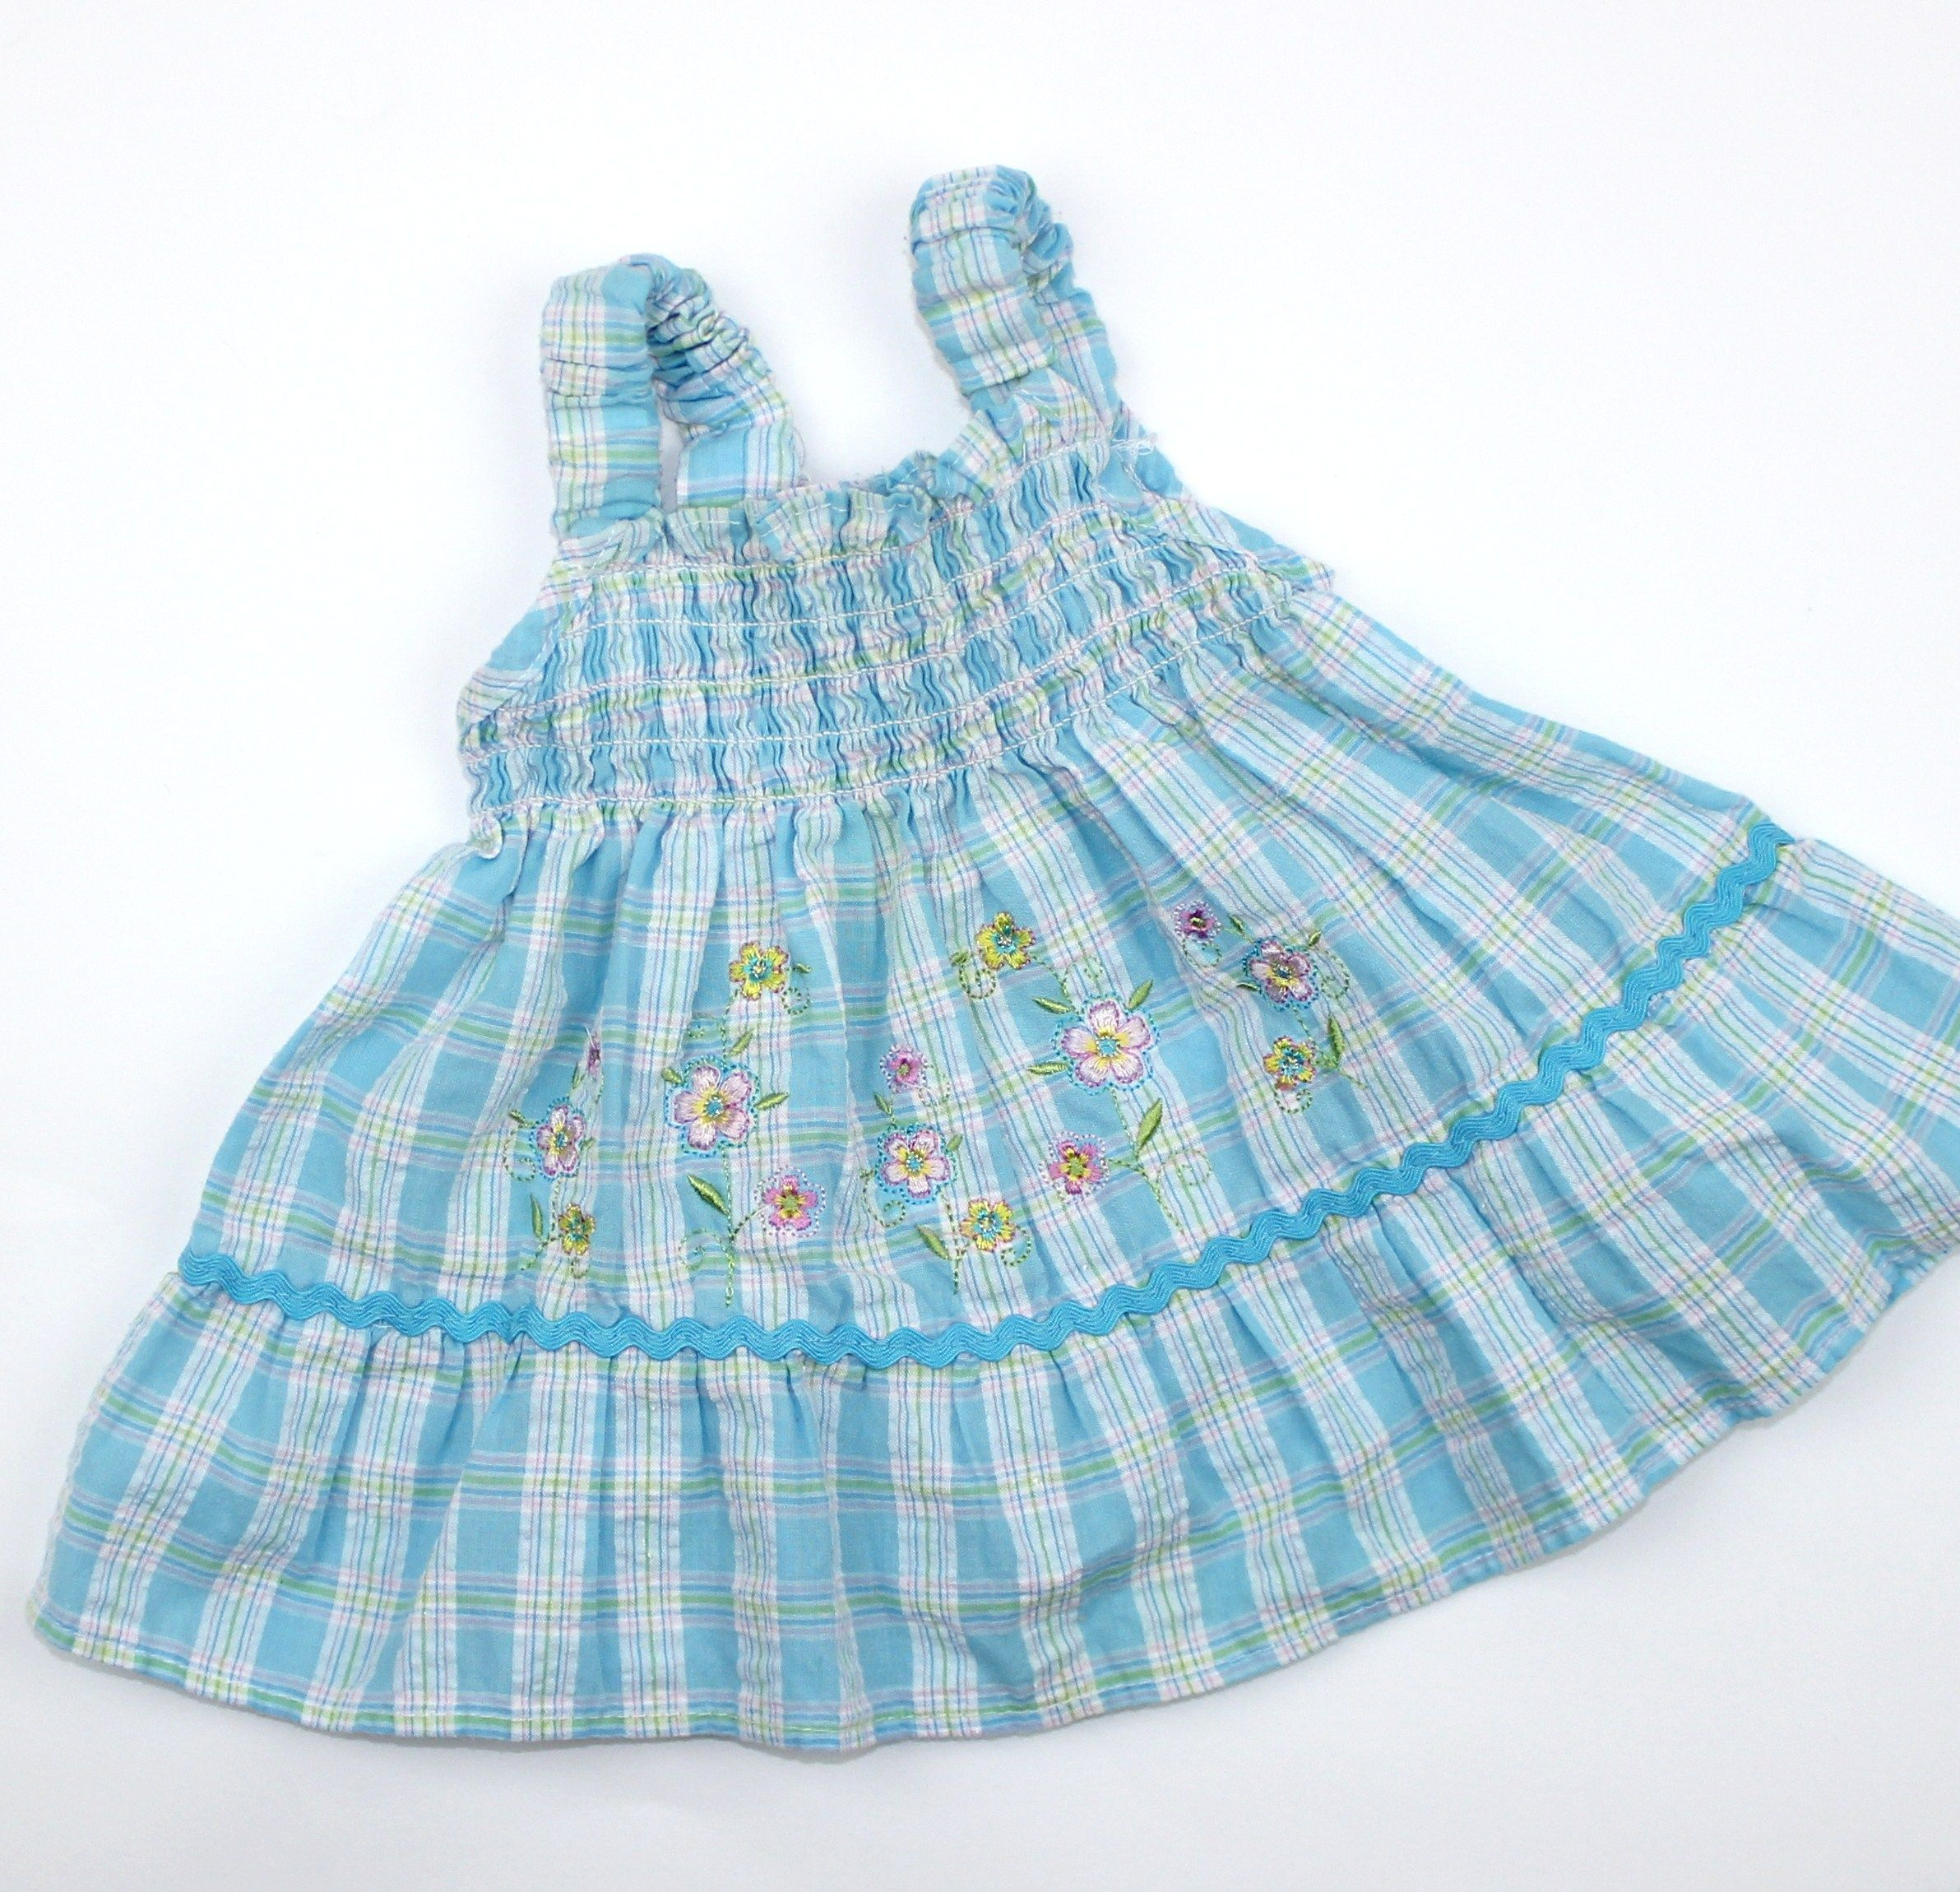 Baby Girl Summer Dress in Size 6 9 Months and ly $4 50 line